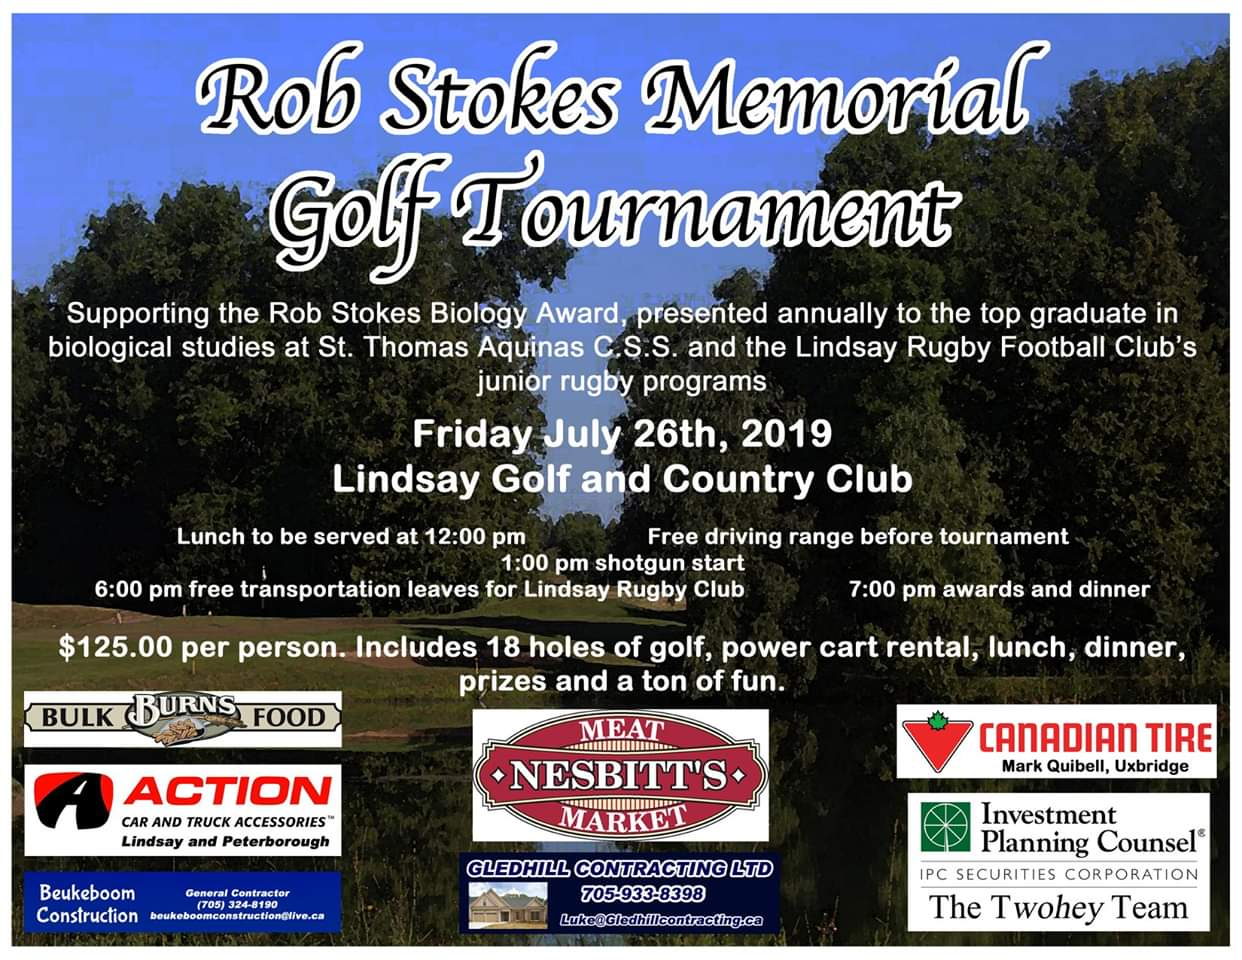 Rob Stokes Memorial Golf Tournament